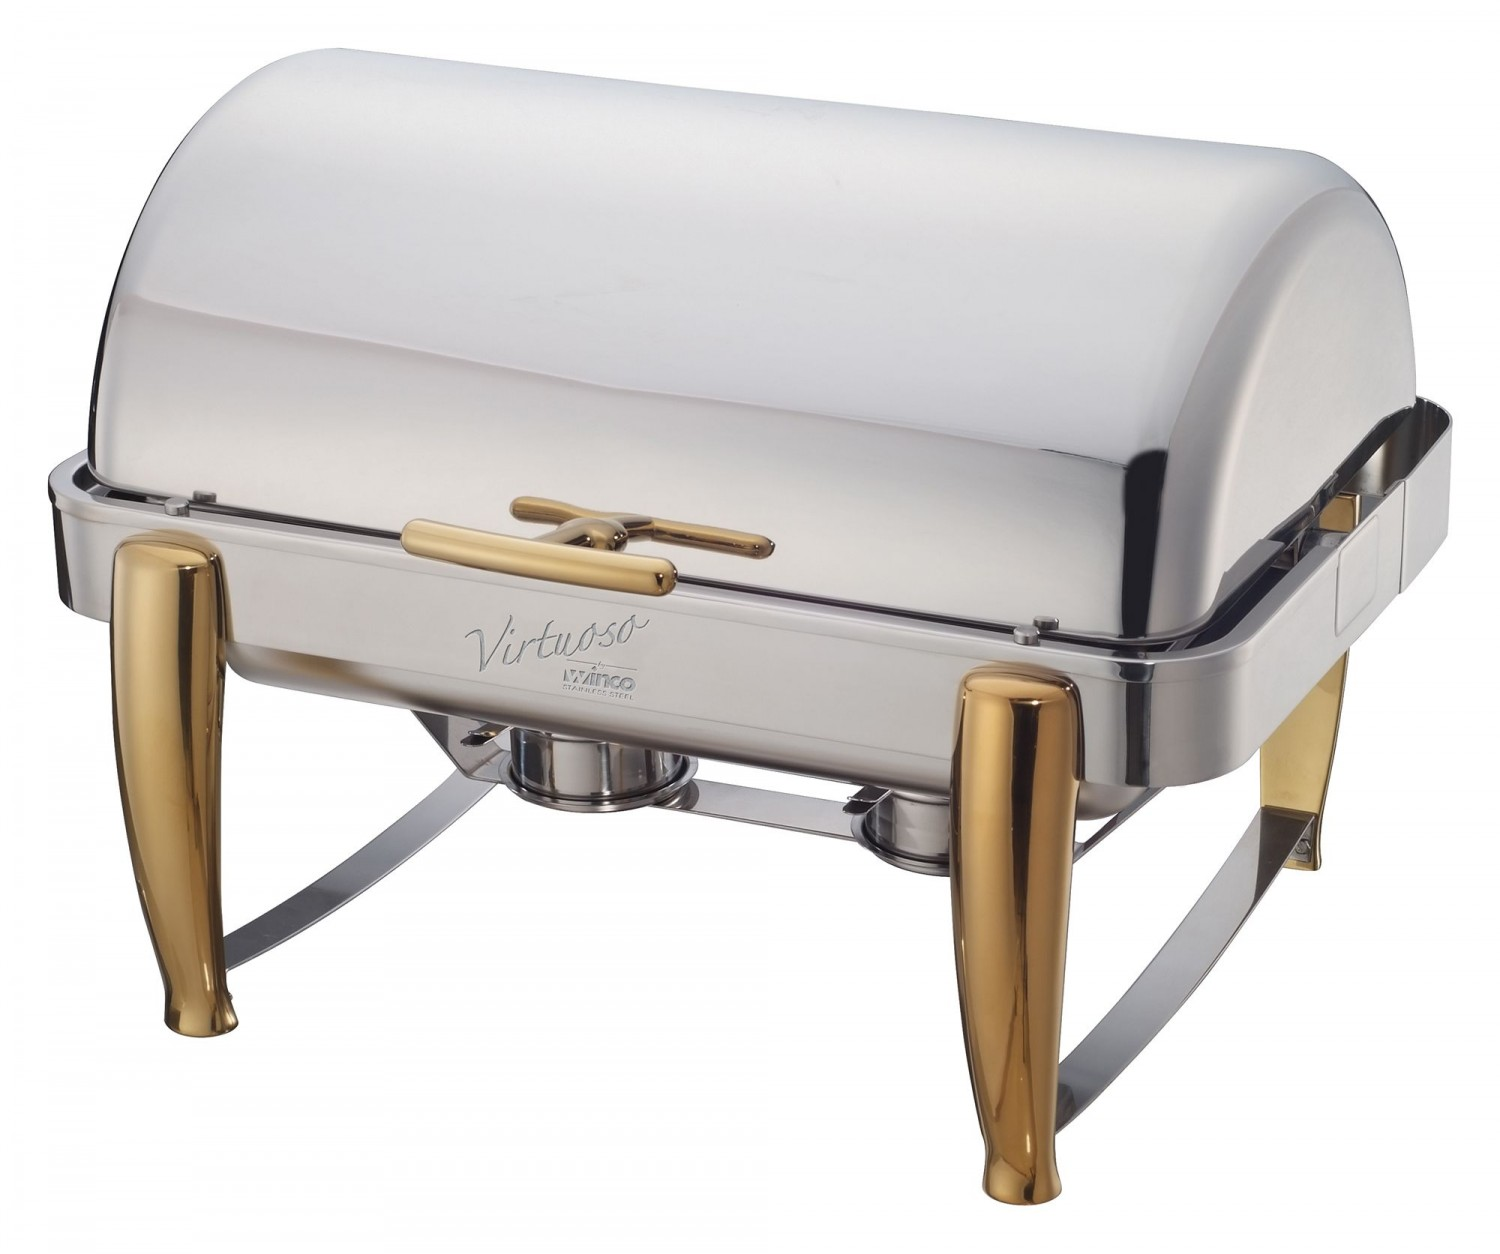 Winco 101A Virtuoso Full Size Oblong Roll Top Chafer with Gold Accents 8 Qt.